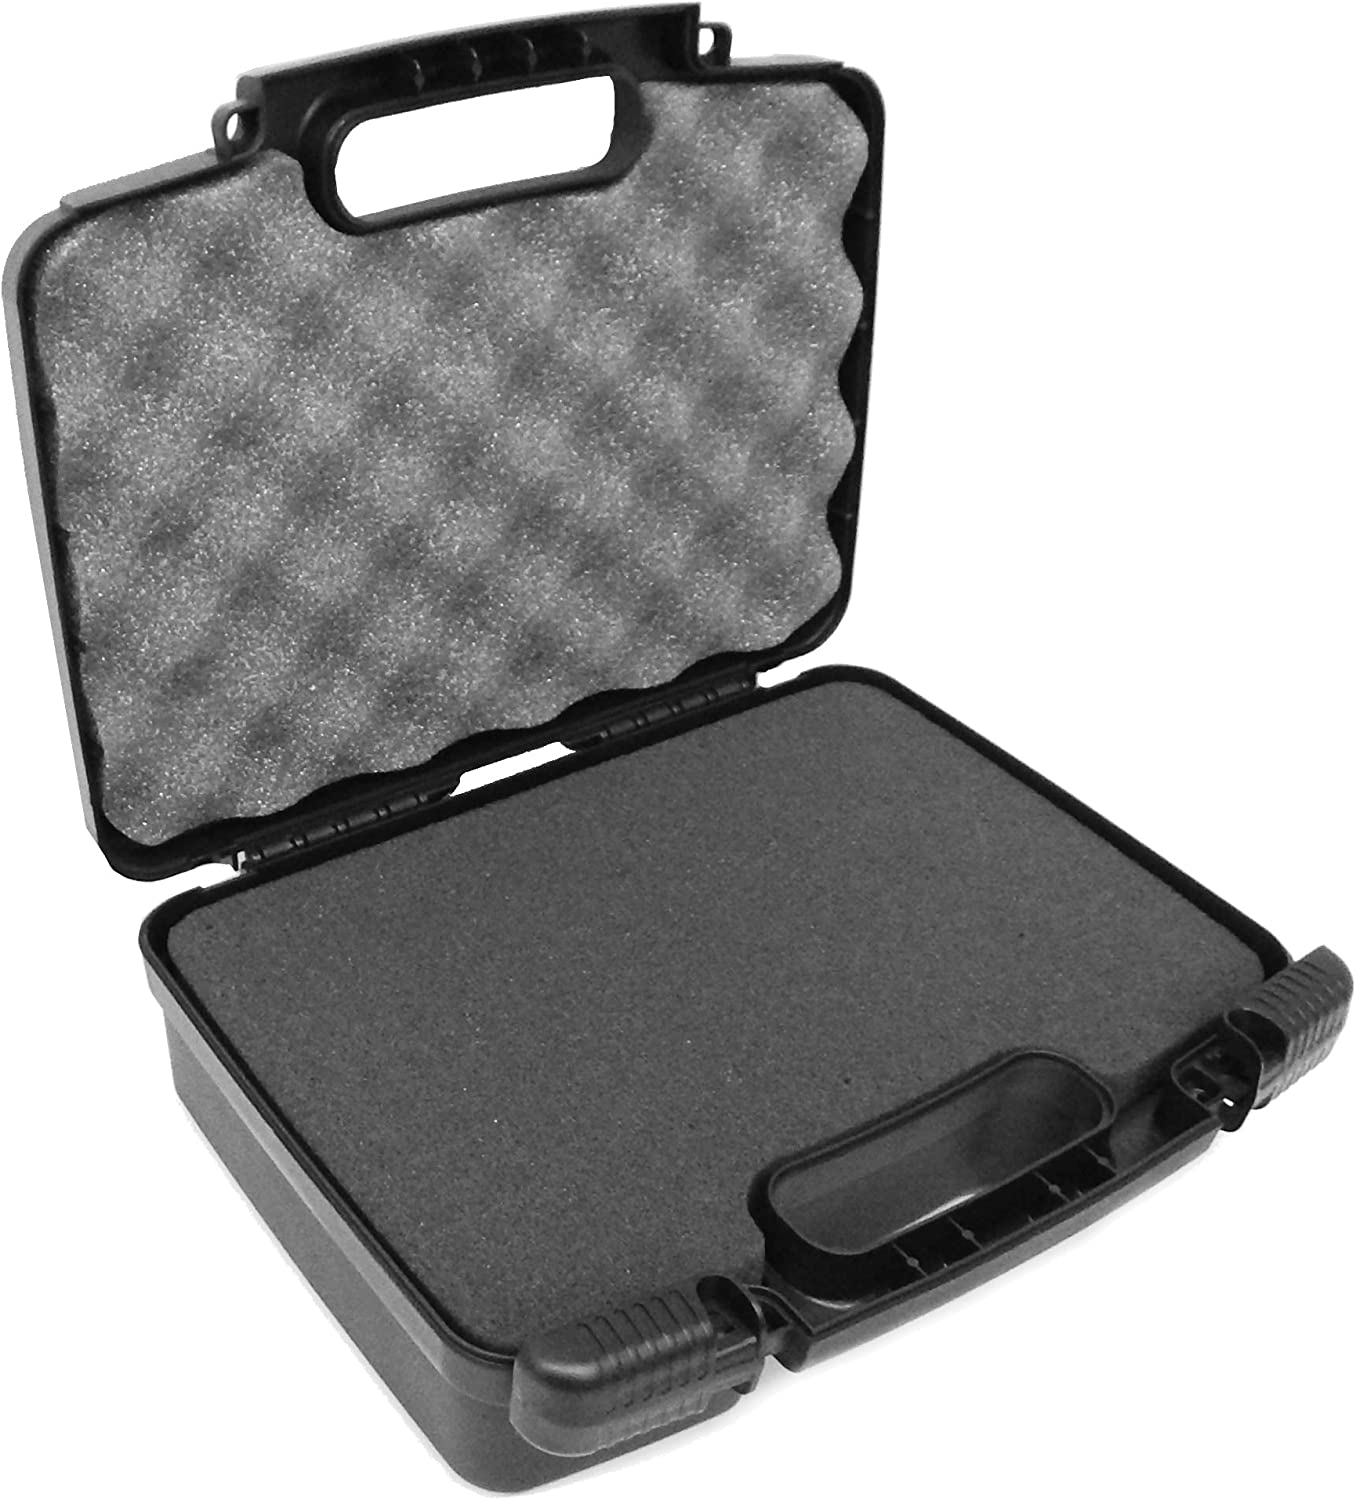 CASEMATIX Portable Projector Hard Case with Foam - Customizable Foam Fits Sony Pico Mobile Projector MPCL1, MPCD1, MP CD1, MP CL1A and More Small Electronics & Accessories - Premium Custom Padded Case